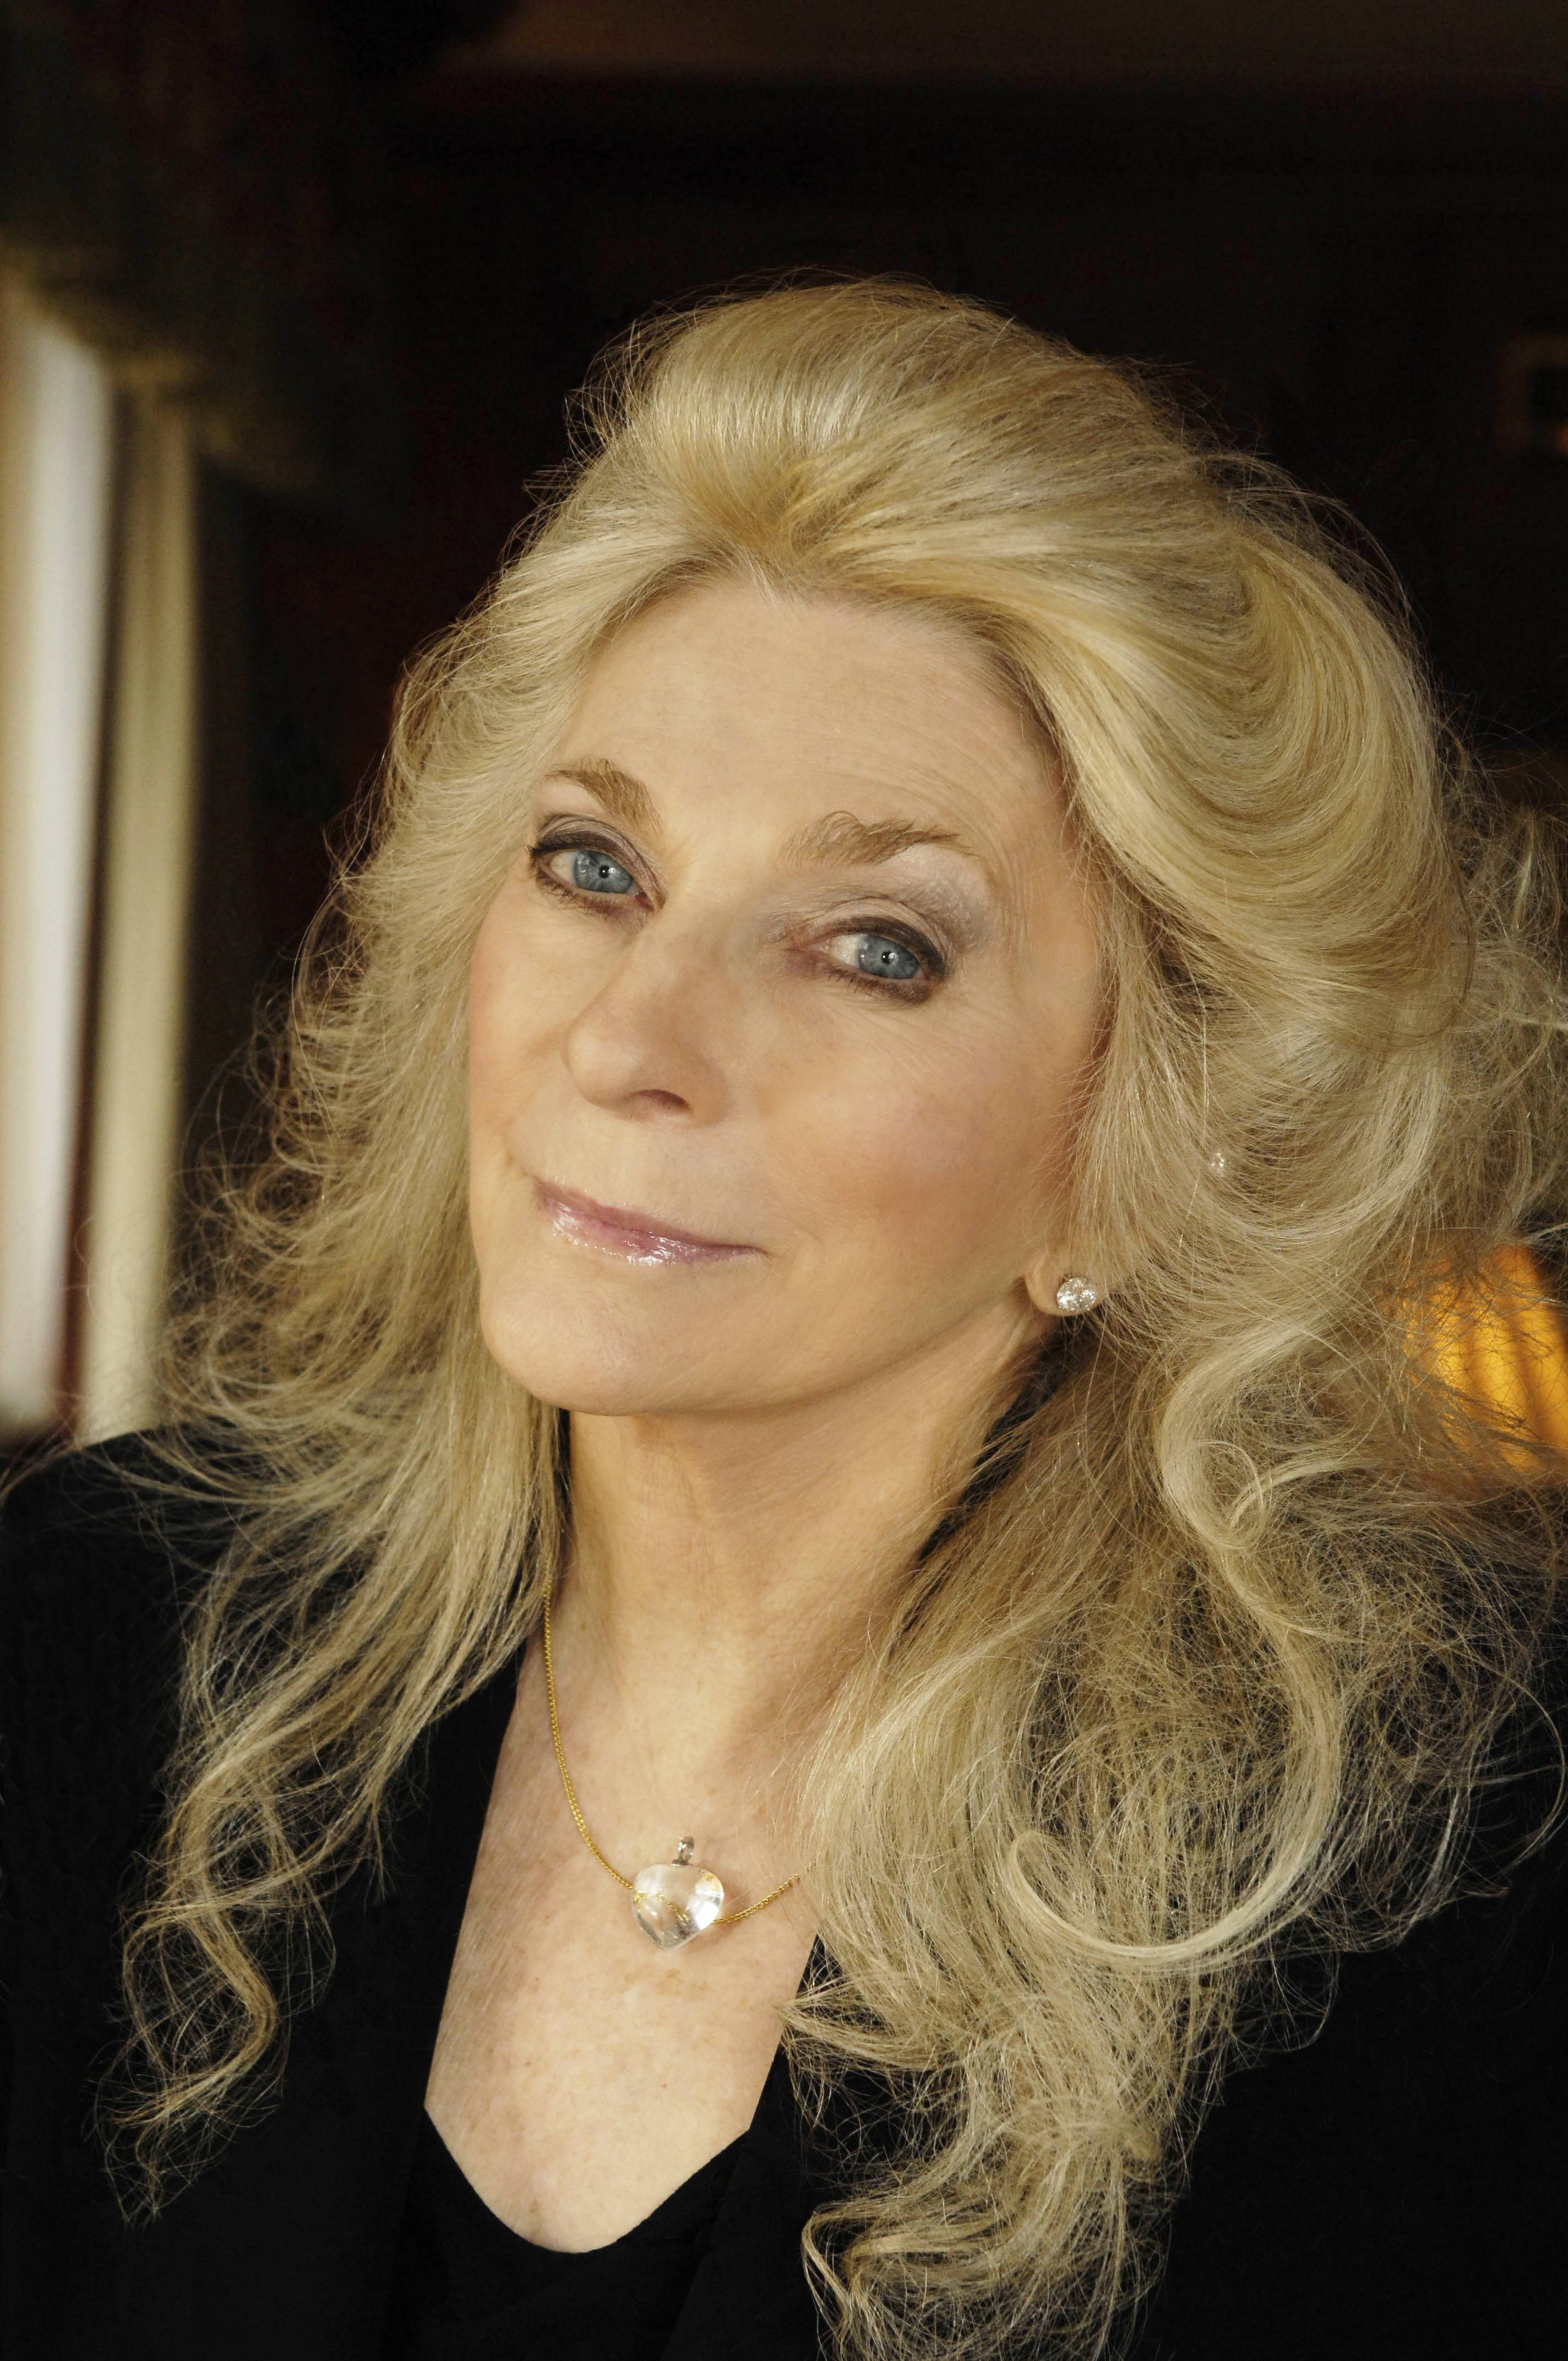 Folk legend Judy Collins headlines on Saturday, Nov. 15, at the Genesee Theatre in Waukegan. Tickets are now on sale.